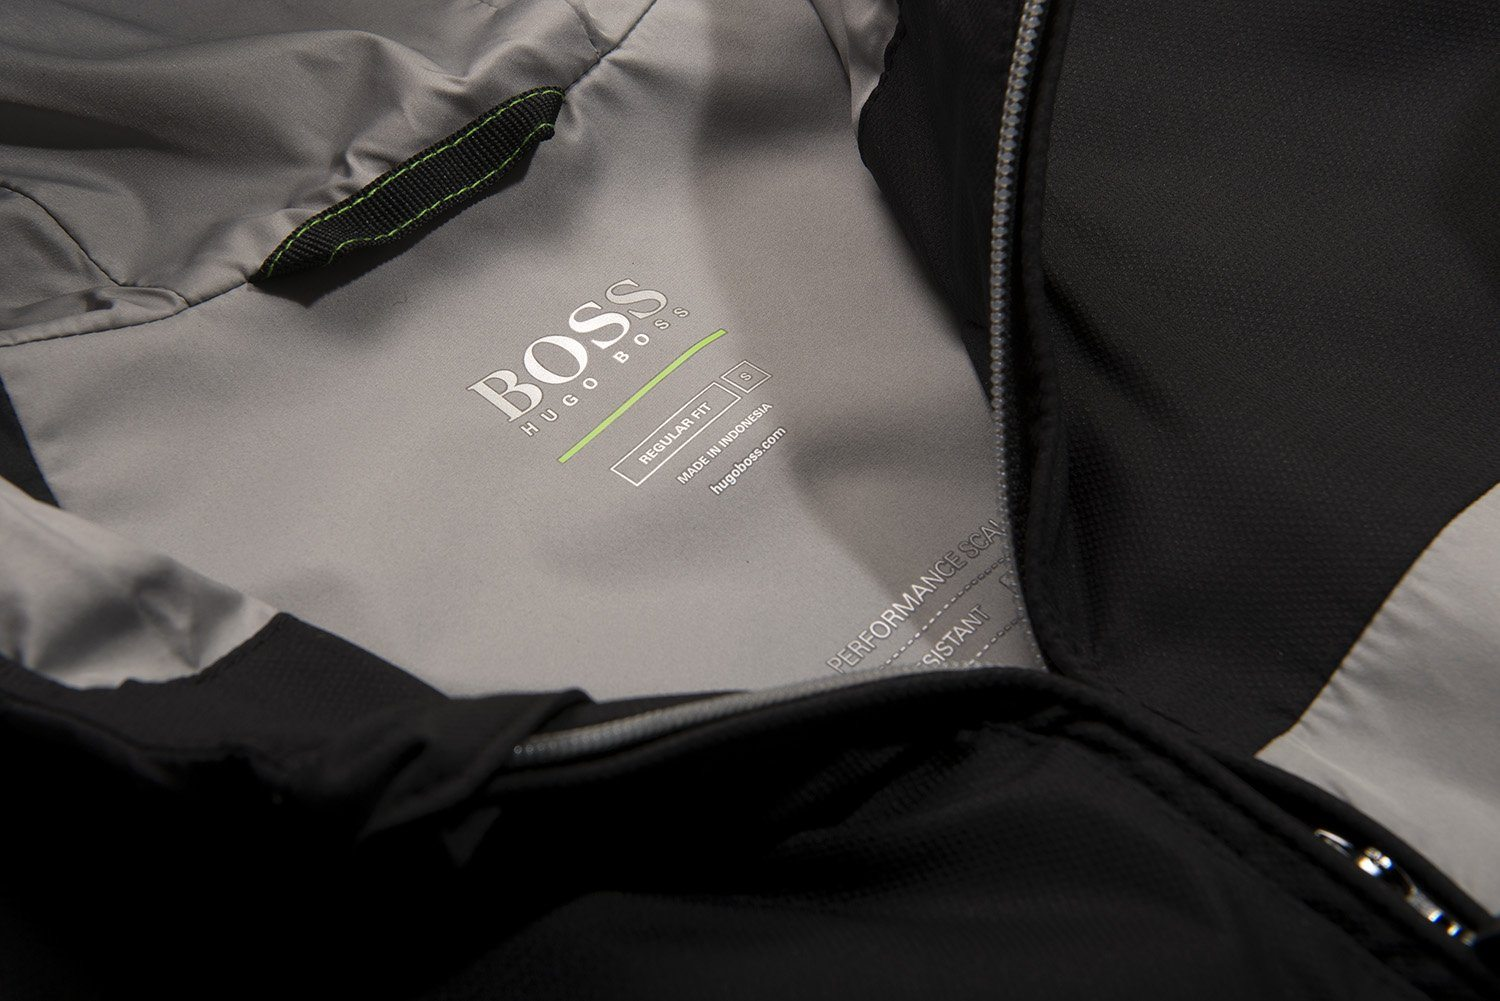 BOSS Athleisure Jeltech Water Repellent Jacket in Black Coats & Jackets BOSS